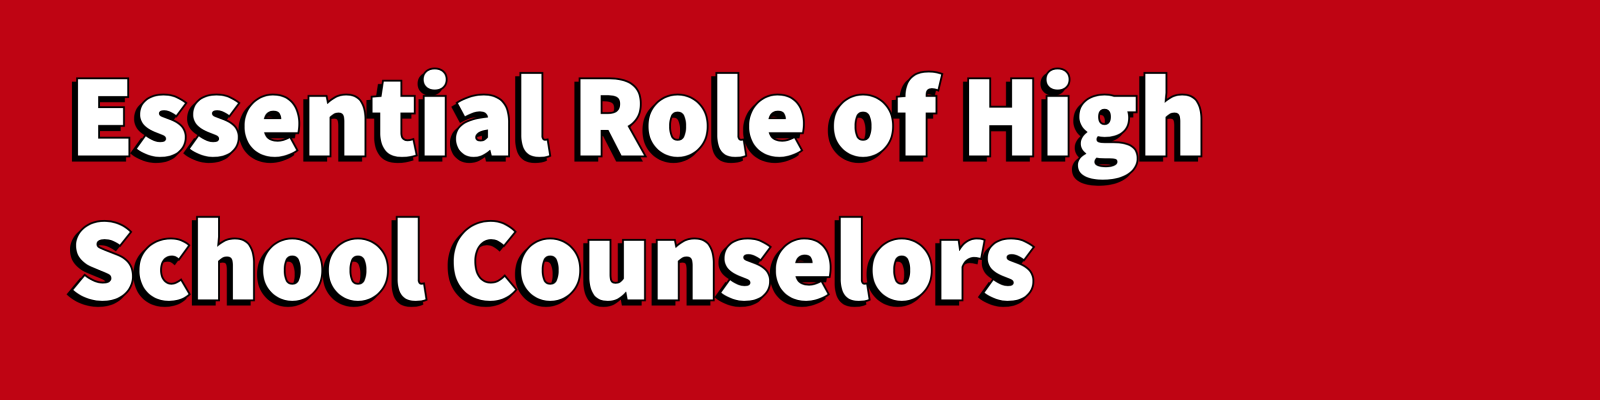 Essential Role of High School Counselors